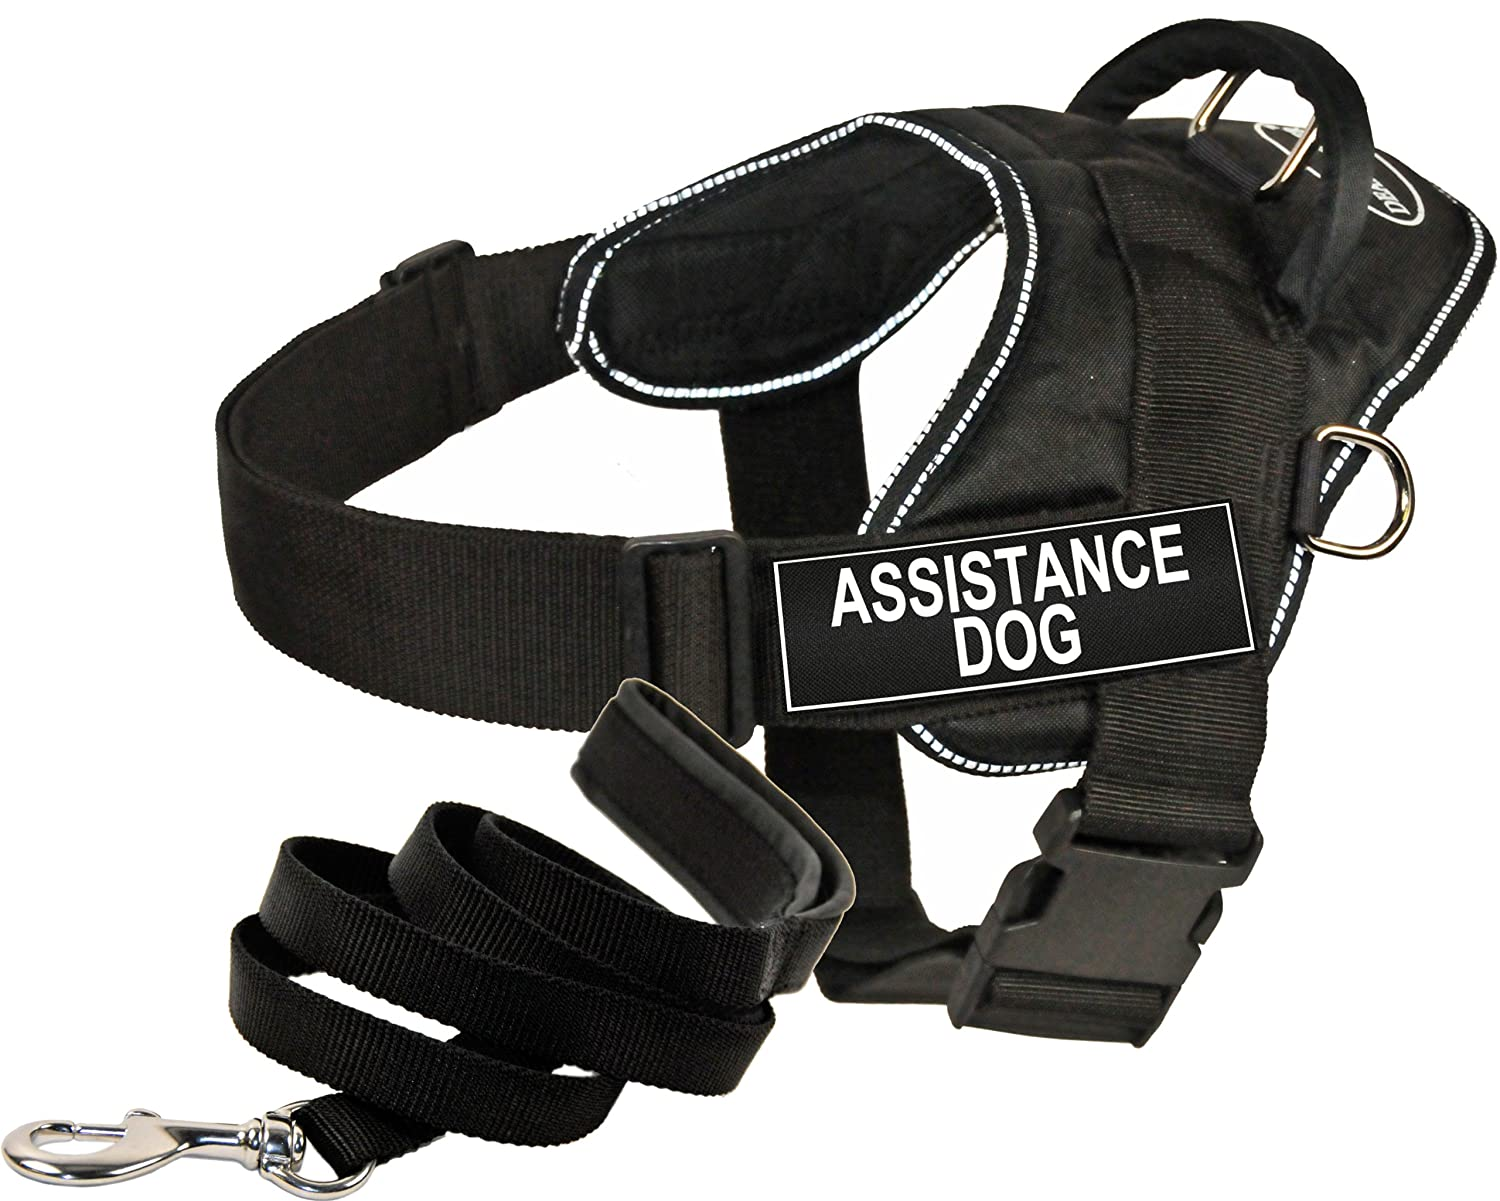 Dean and Tyler Bundle One DT Fun Works  Harness, Assistance Dog, Reflective, Medium + One Padded Puppy  Leash, 6 FT Stainless Steel Snap Black